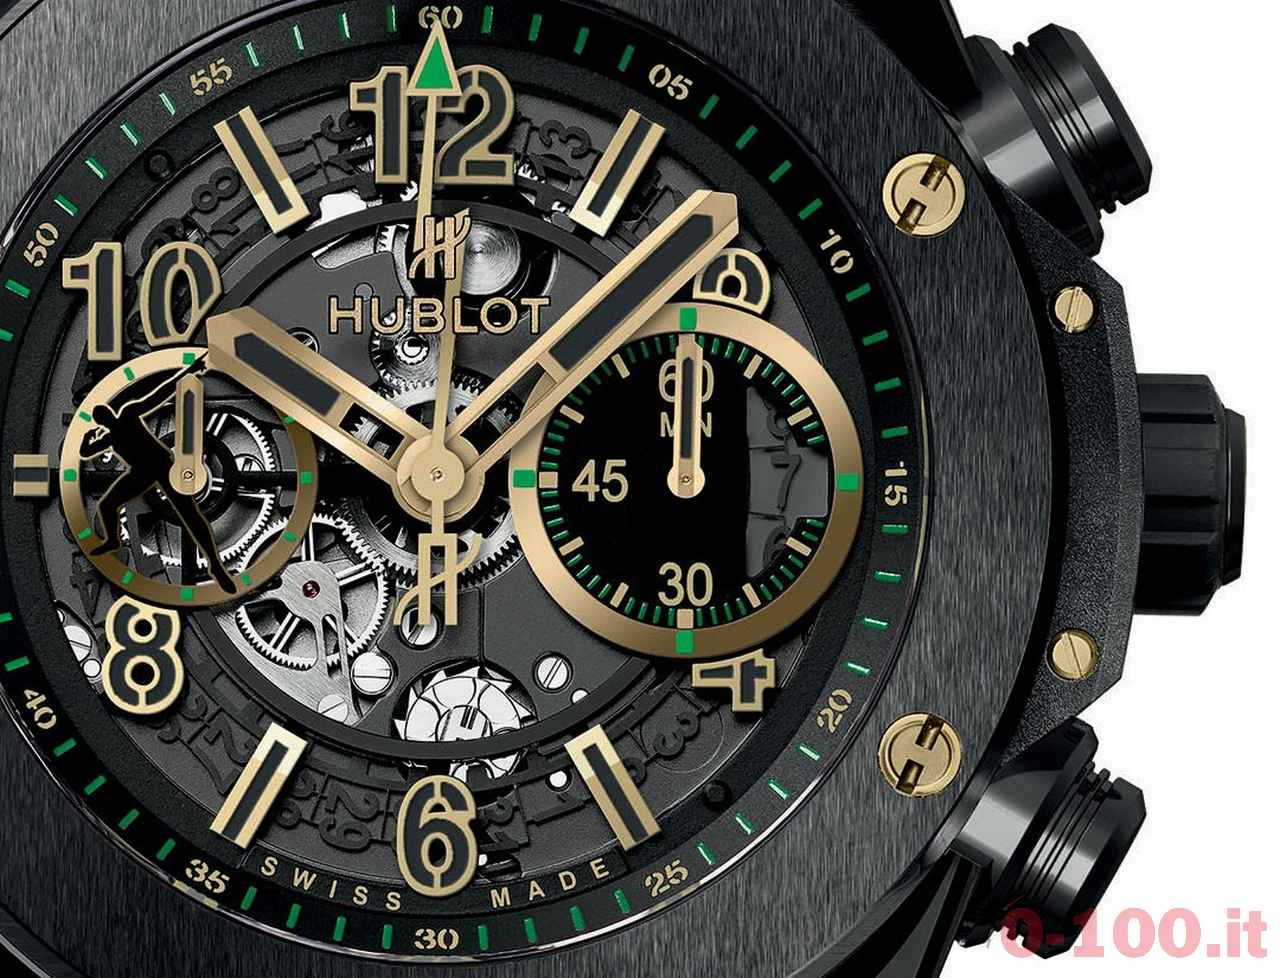 chopard-superfast-chrono-porsche-919-black-edition-ref-168535-3005-limited-edition_0-1004